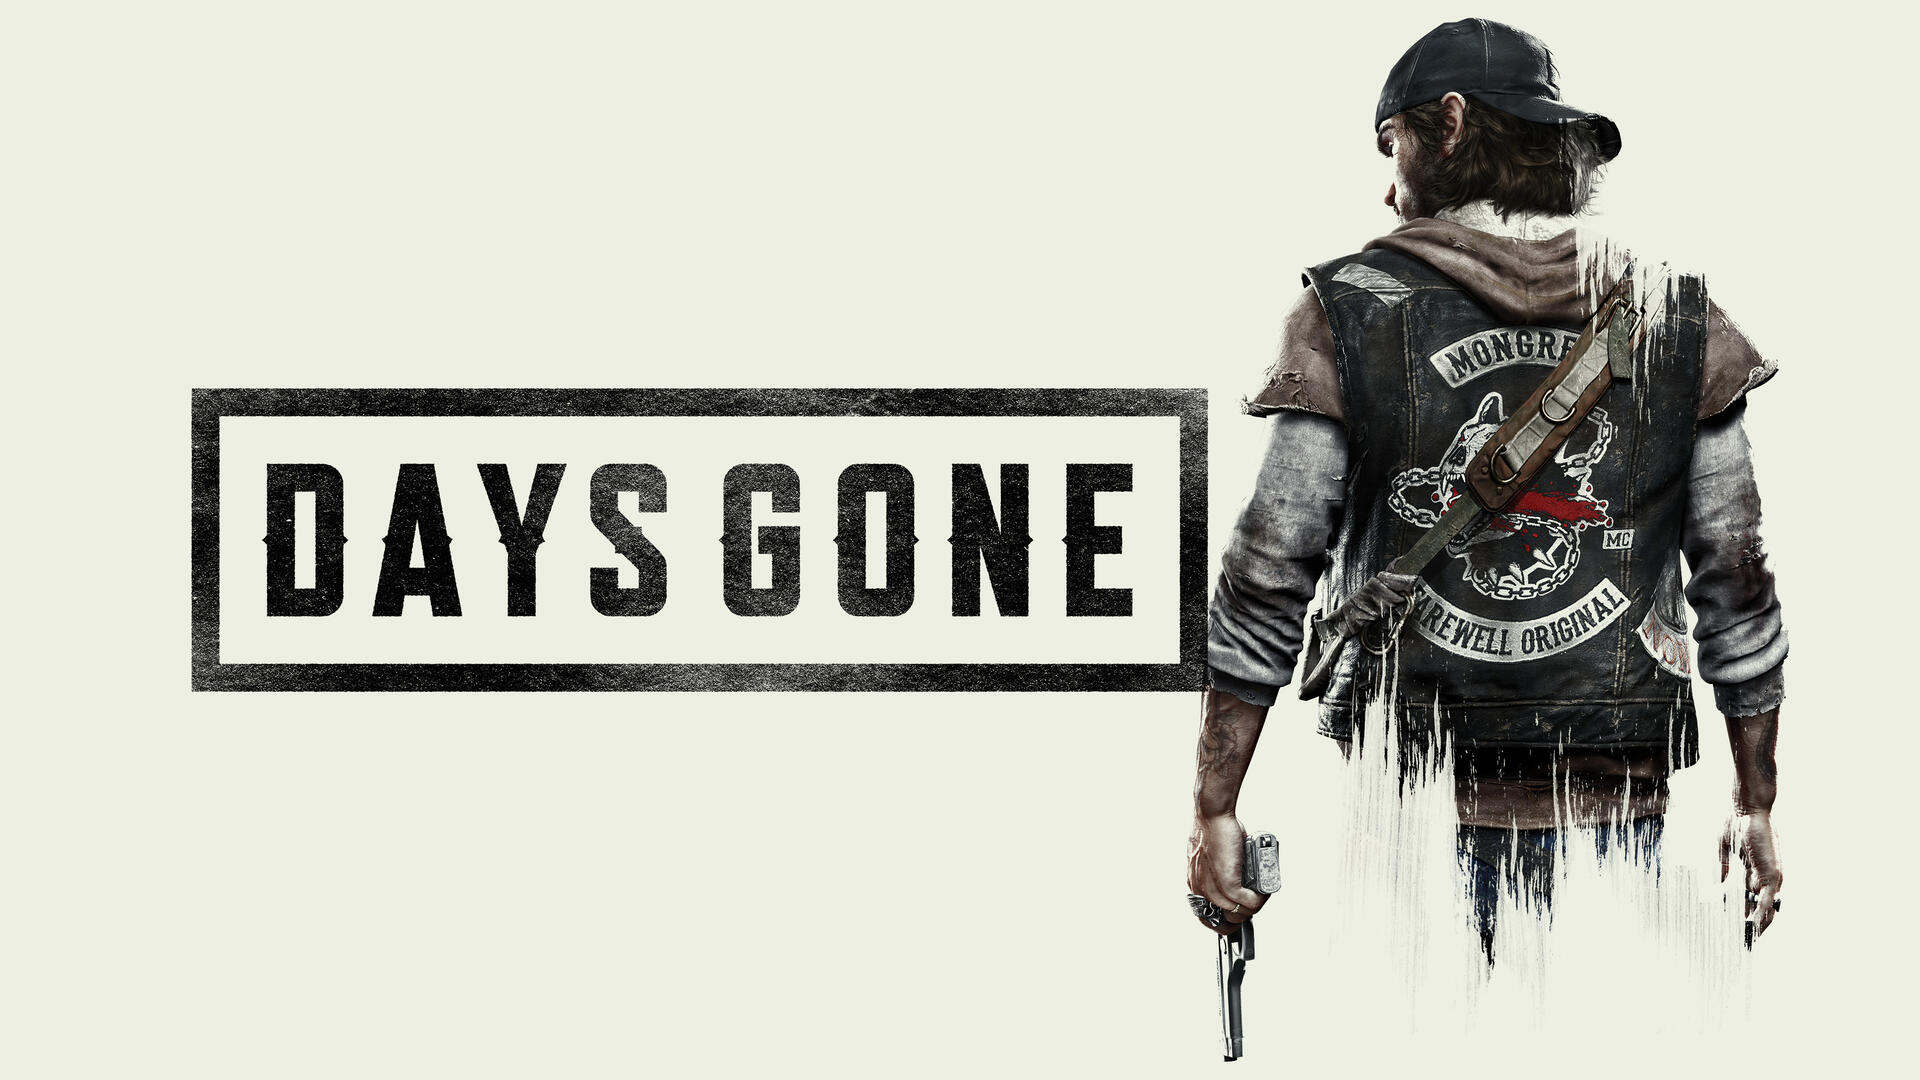 Days Gone Release Date, Gameplay, Characters, PS4 Pro Enhancements - Everything we Know